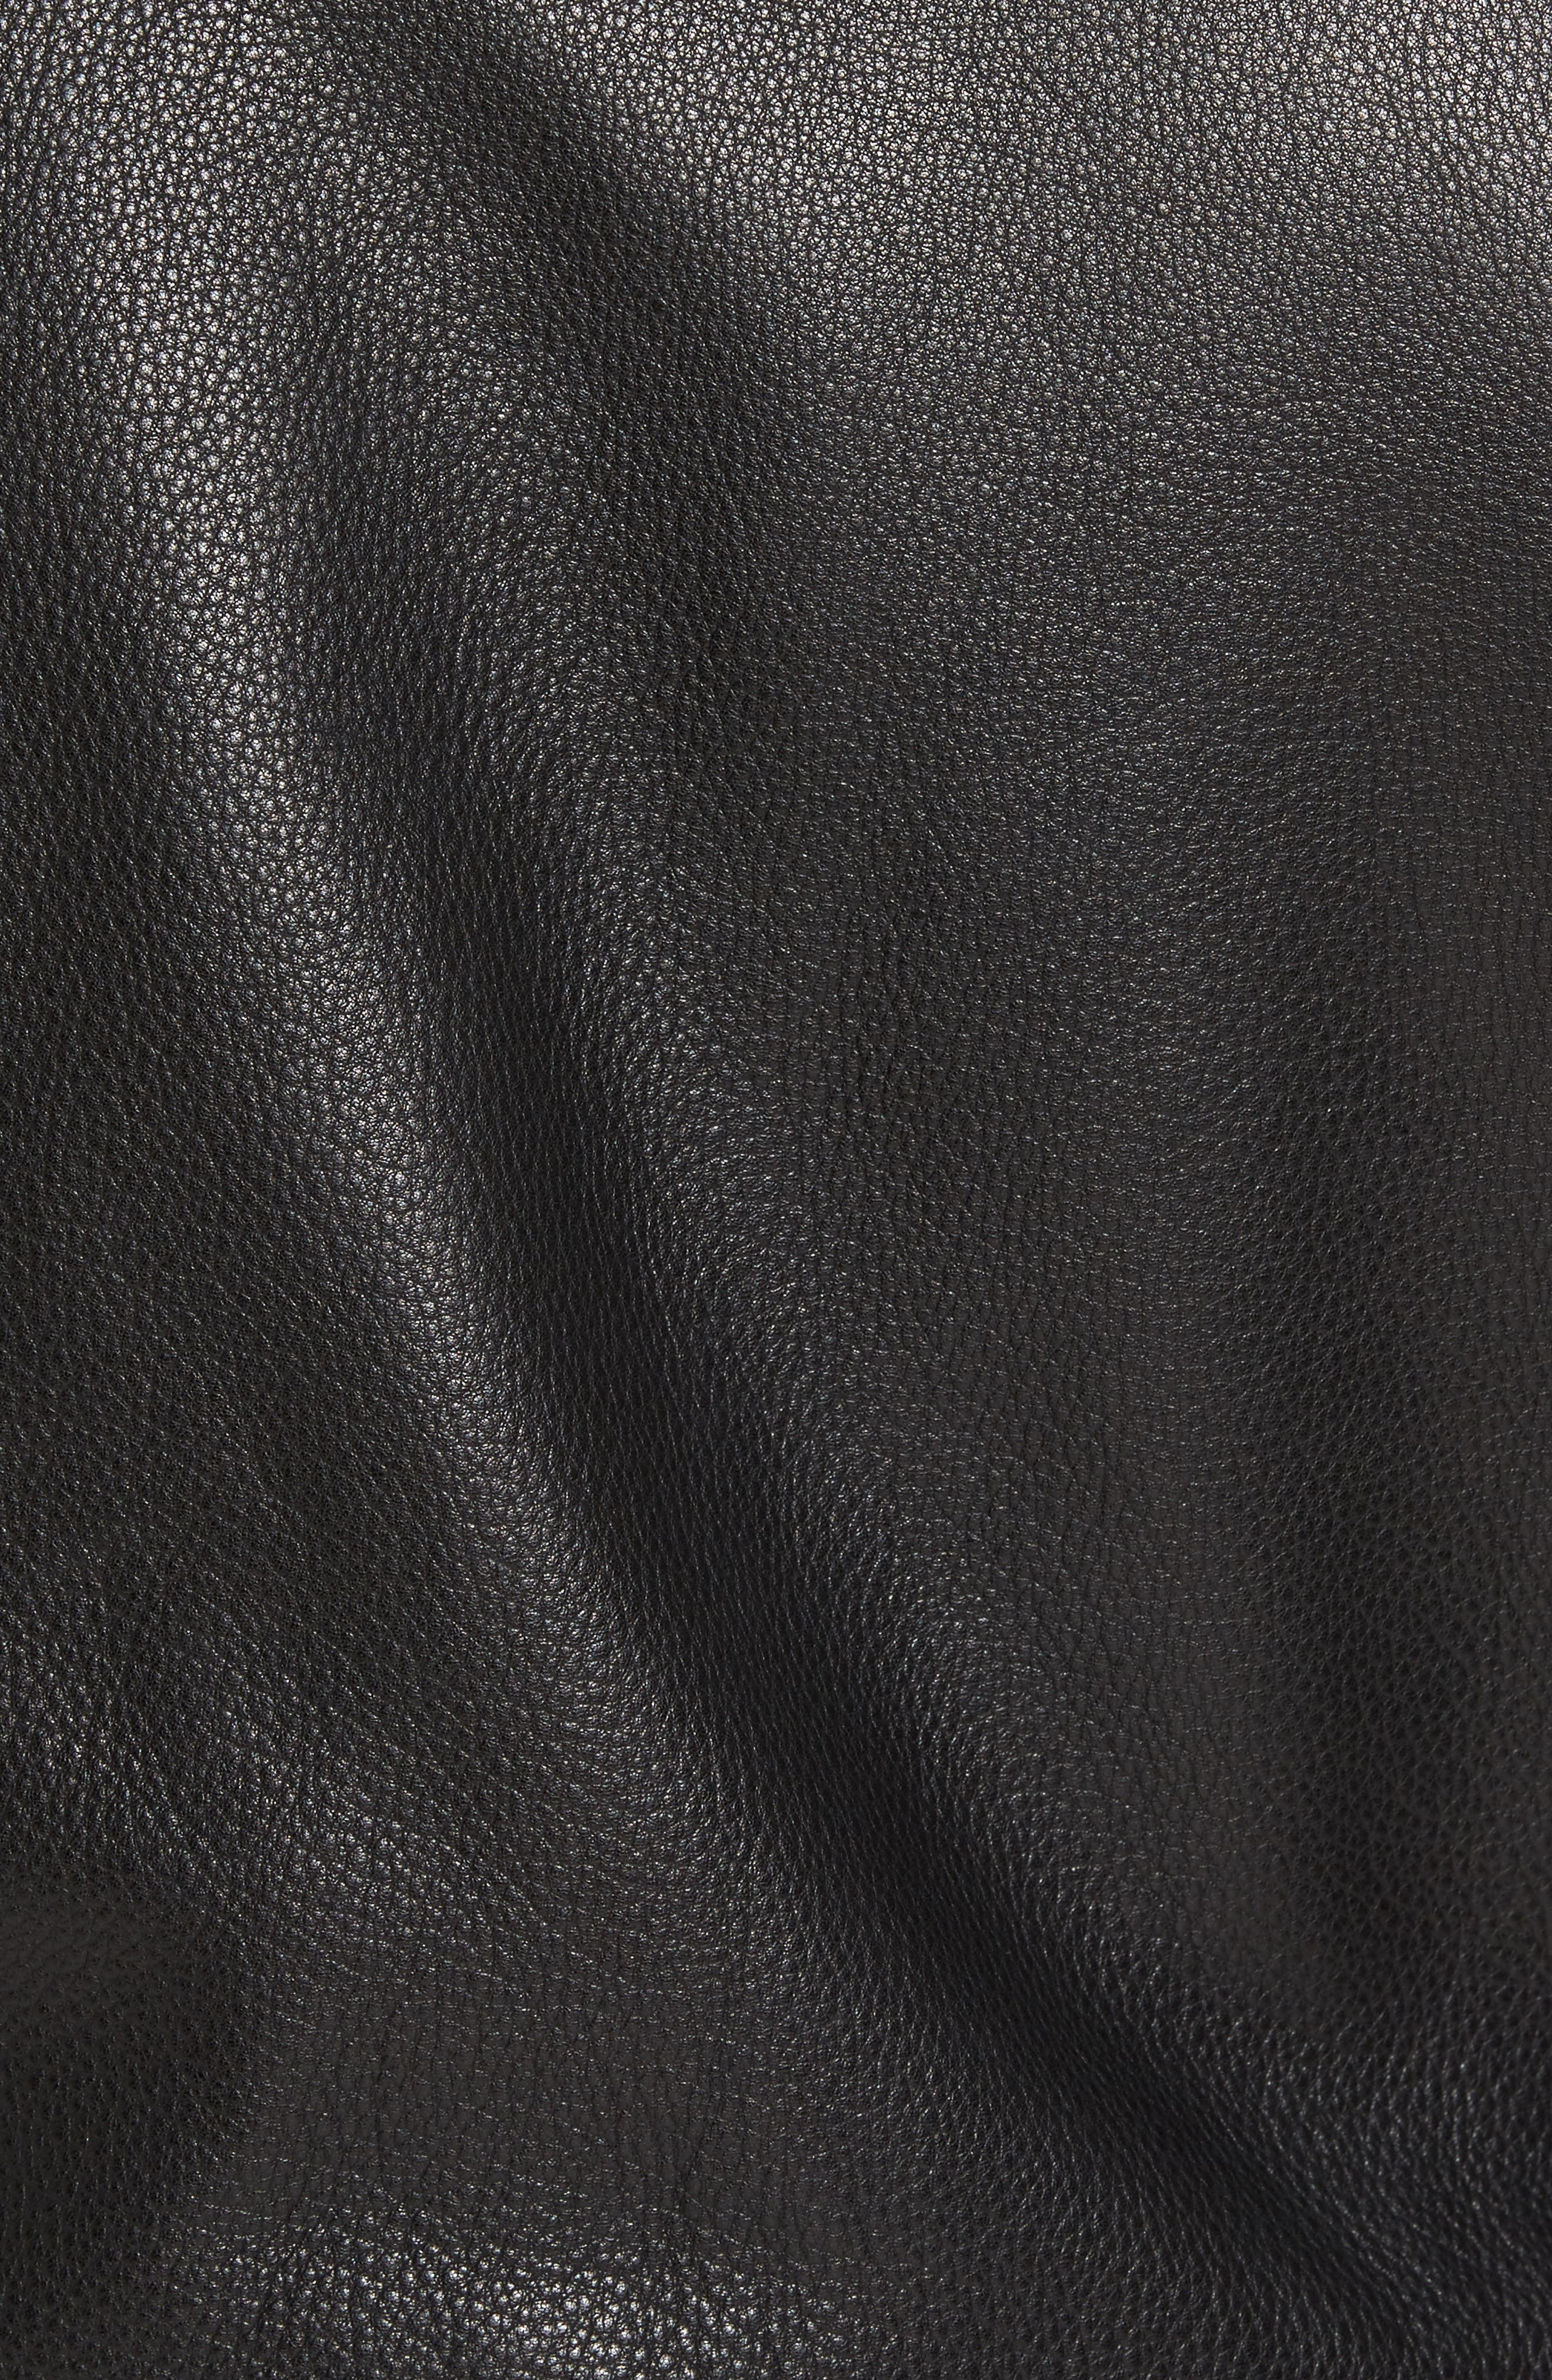 Staines Leather Moto Jacket,                             Alternate thumbnail 5, color,                             Black